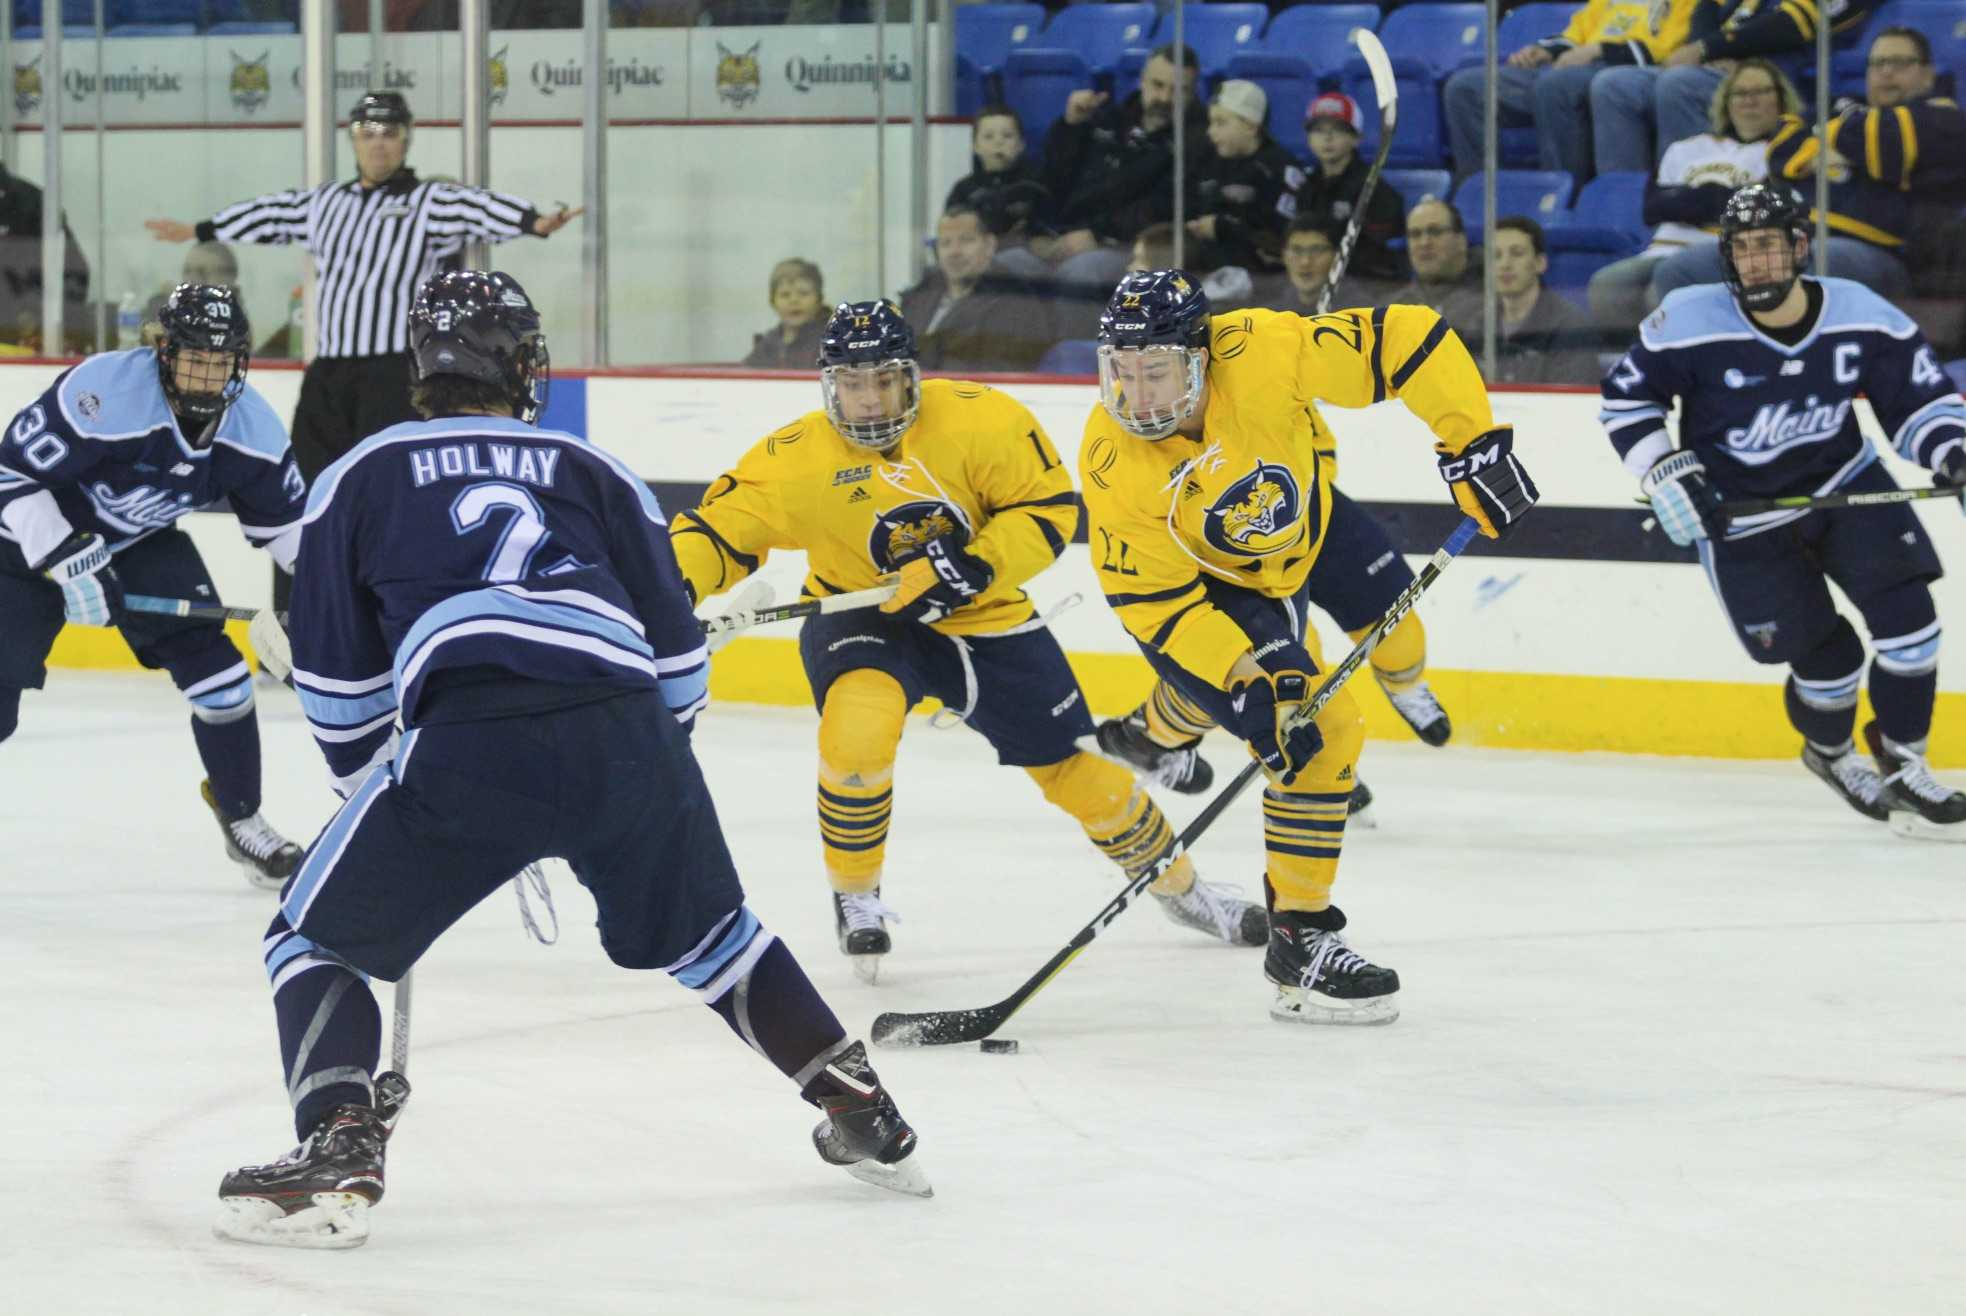 Quinnipiac men's ice hockey blows three-goal lead, loses 7-4 to Maine